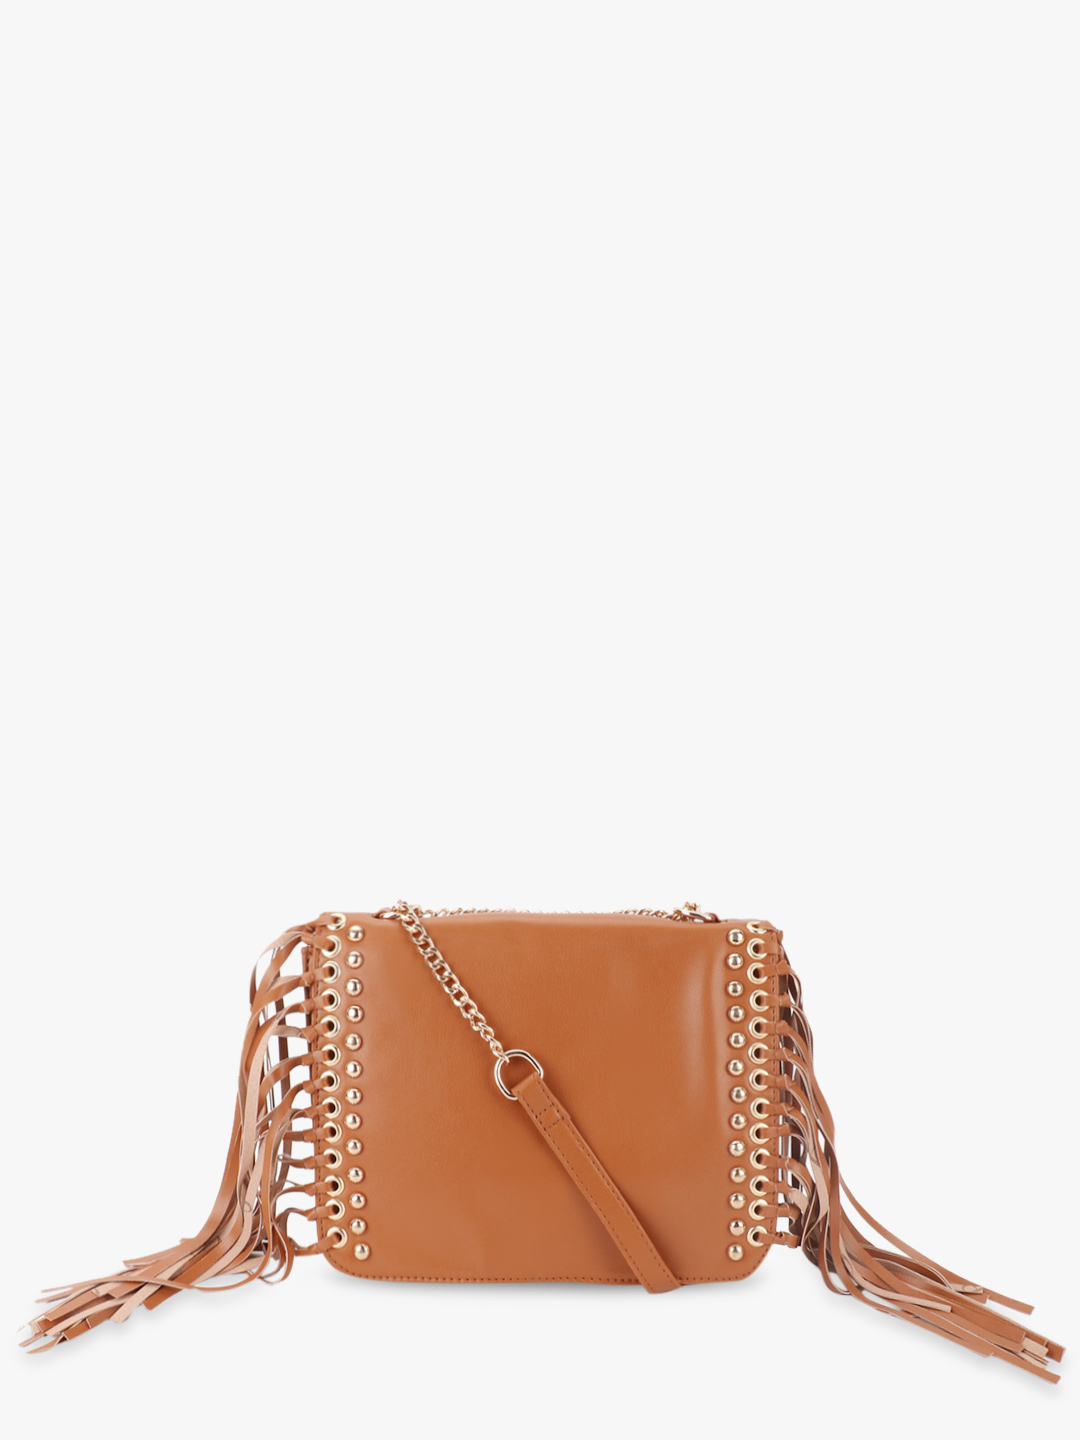 Paris Belle Brown Slingbag With Stud And Fringe Details 1